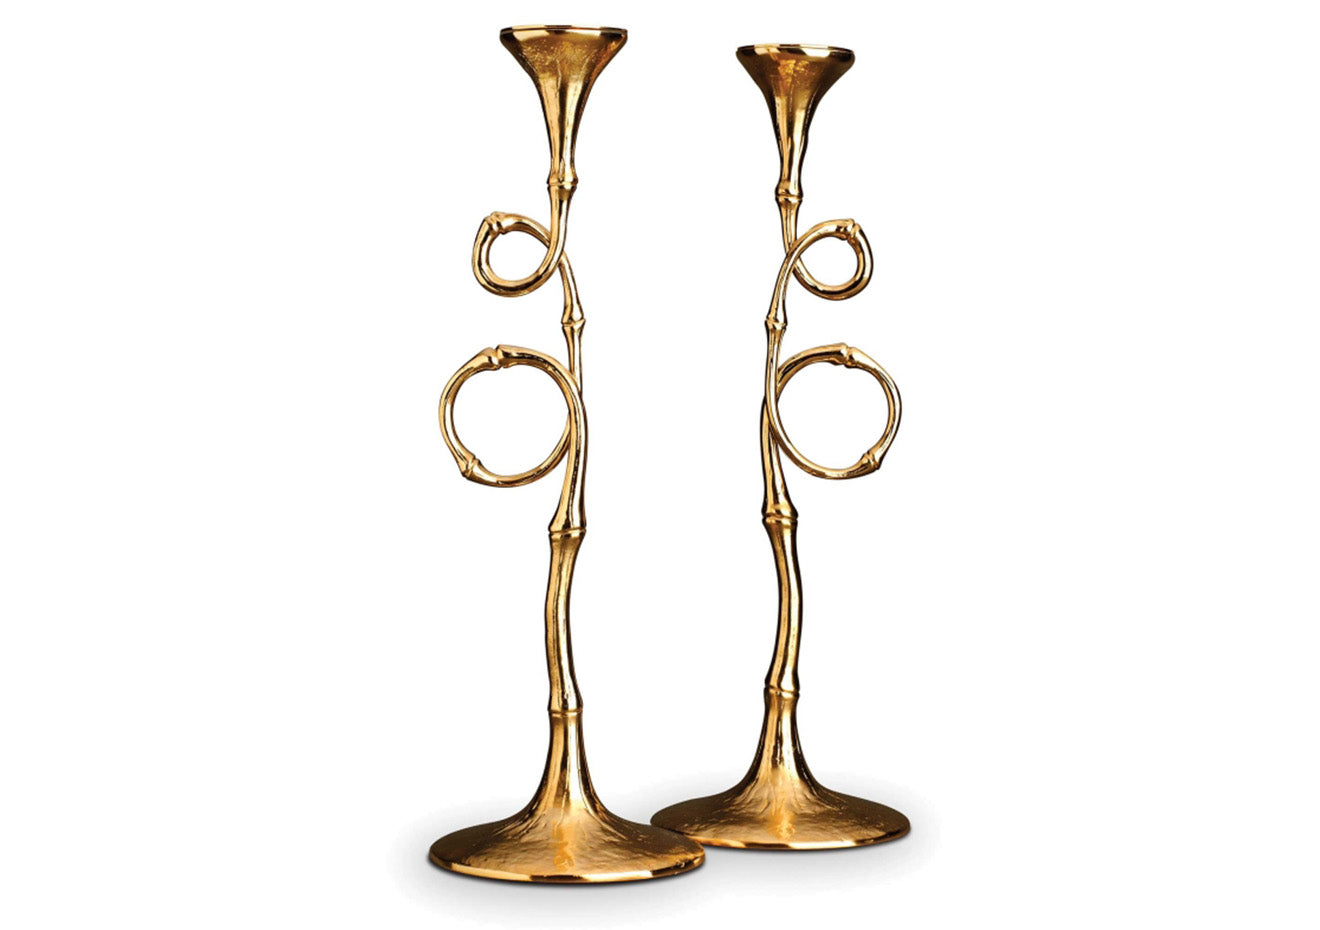 Twisted bamboo effect brass candle sticks from Evoca and Luxudeco